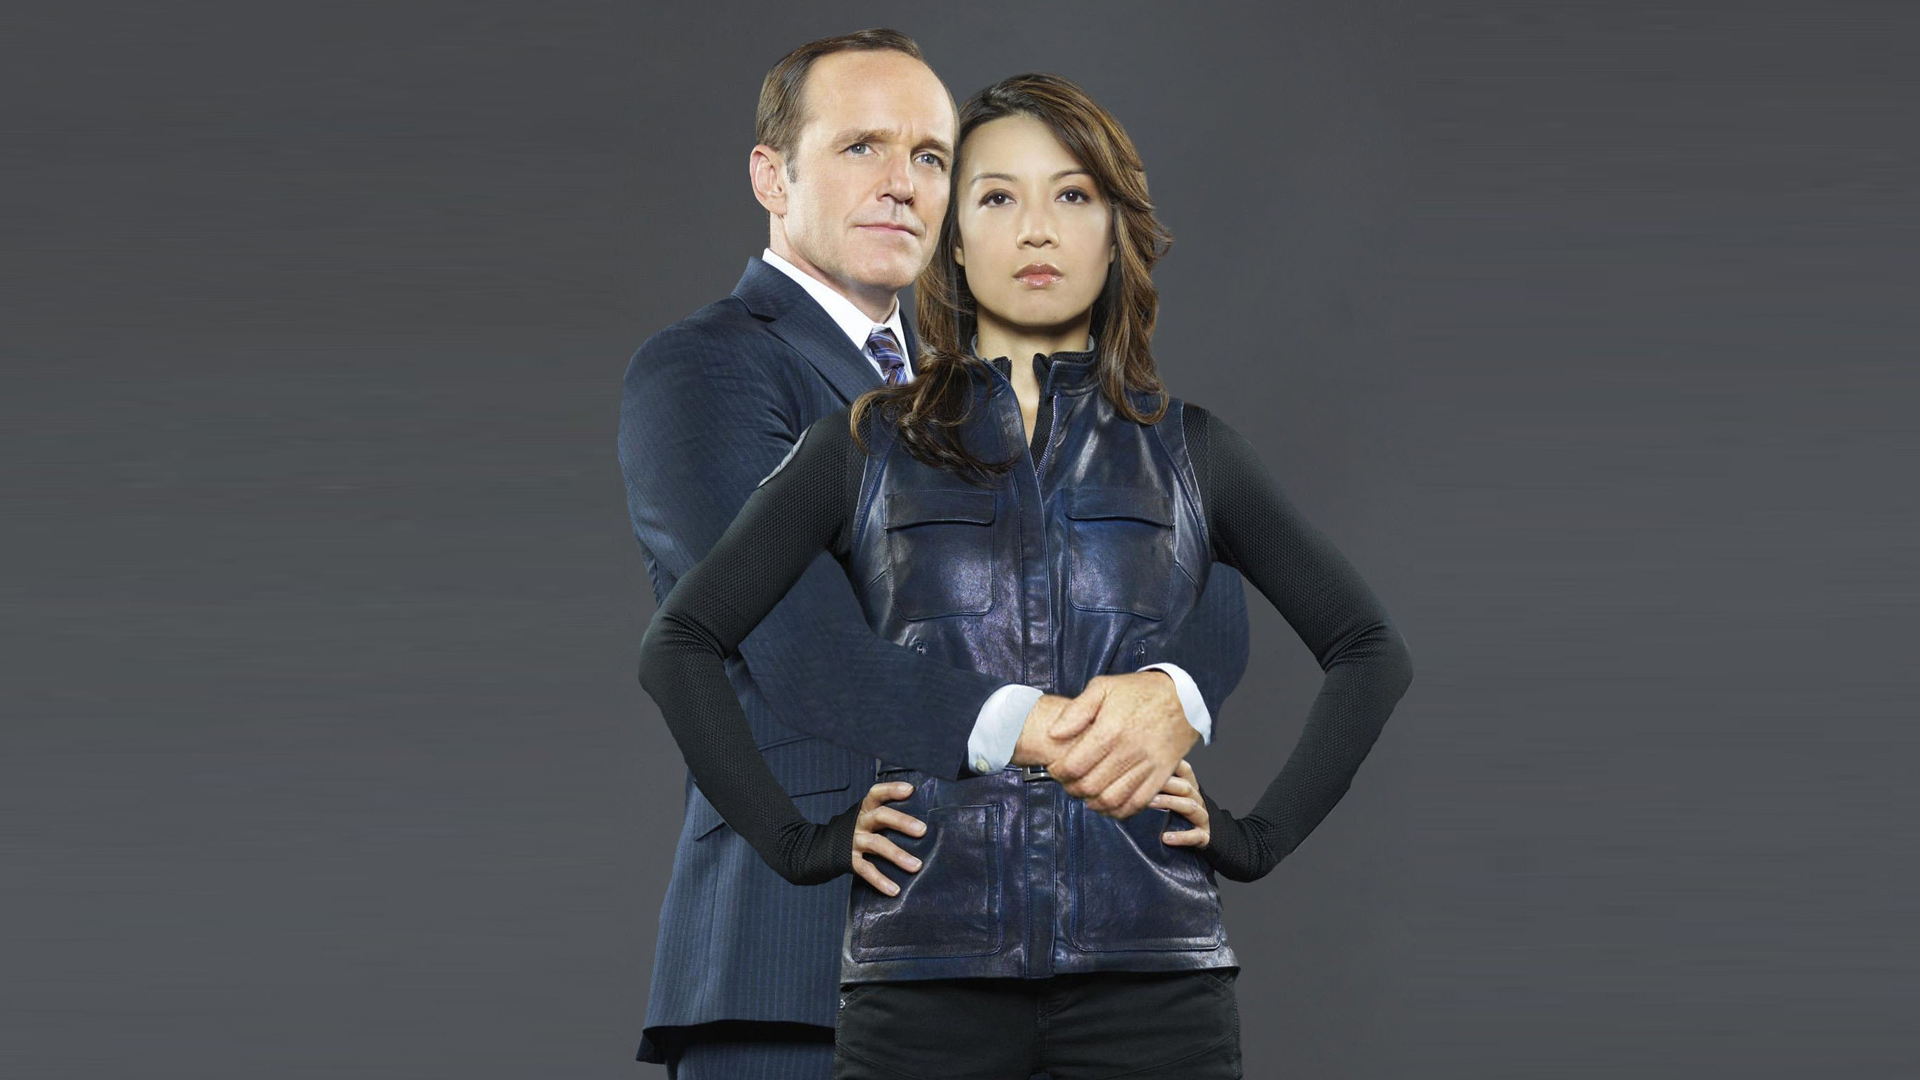 agents of shield wallpaper 20